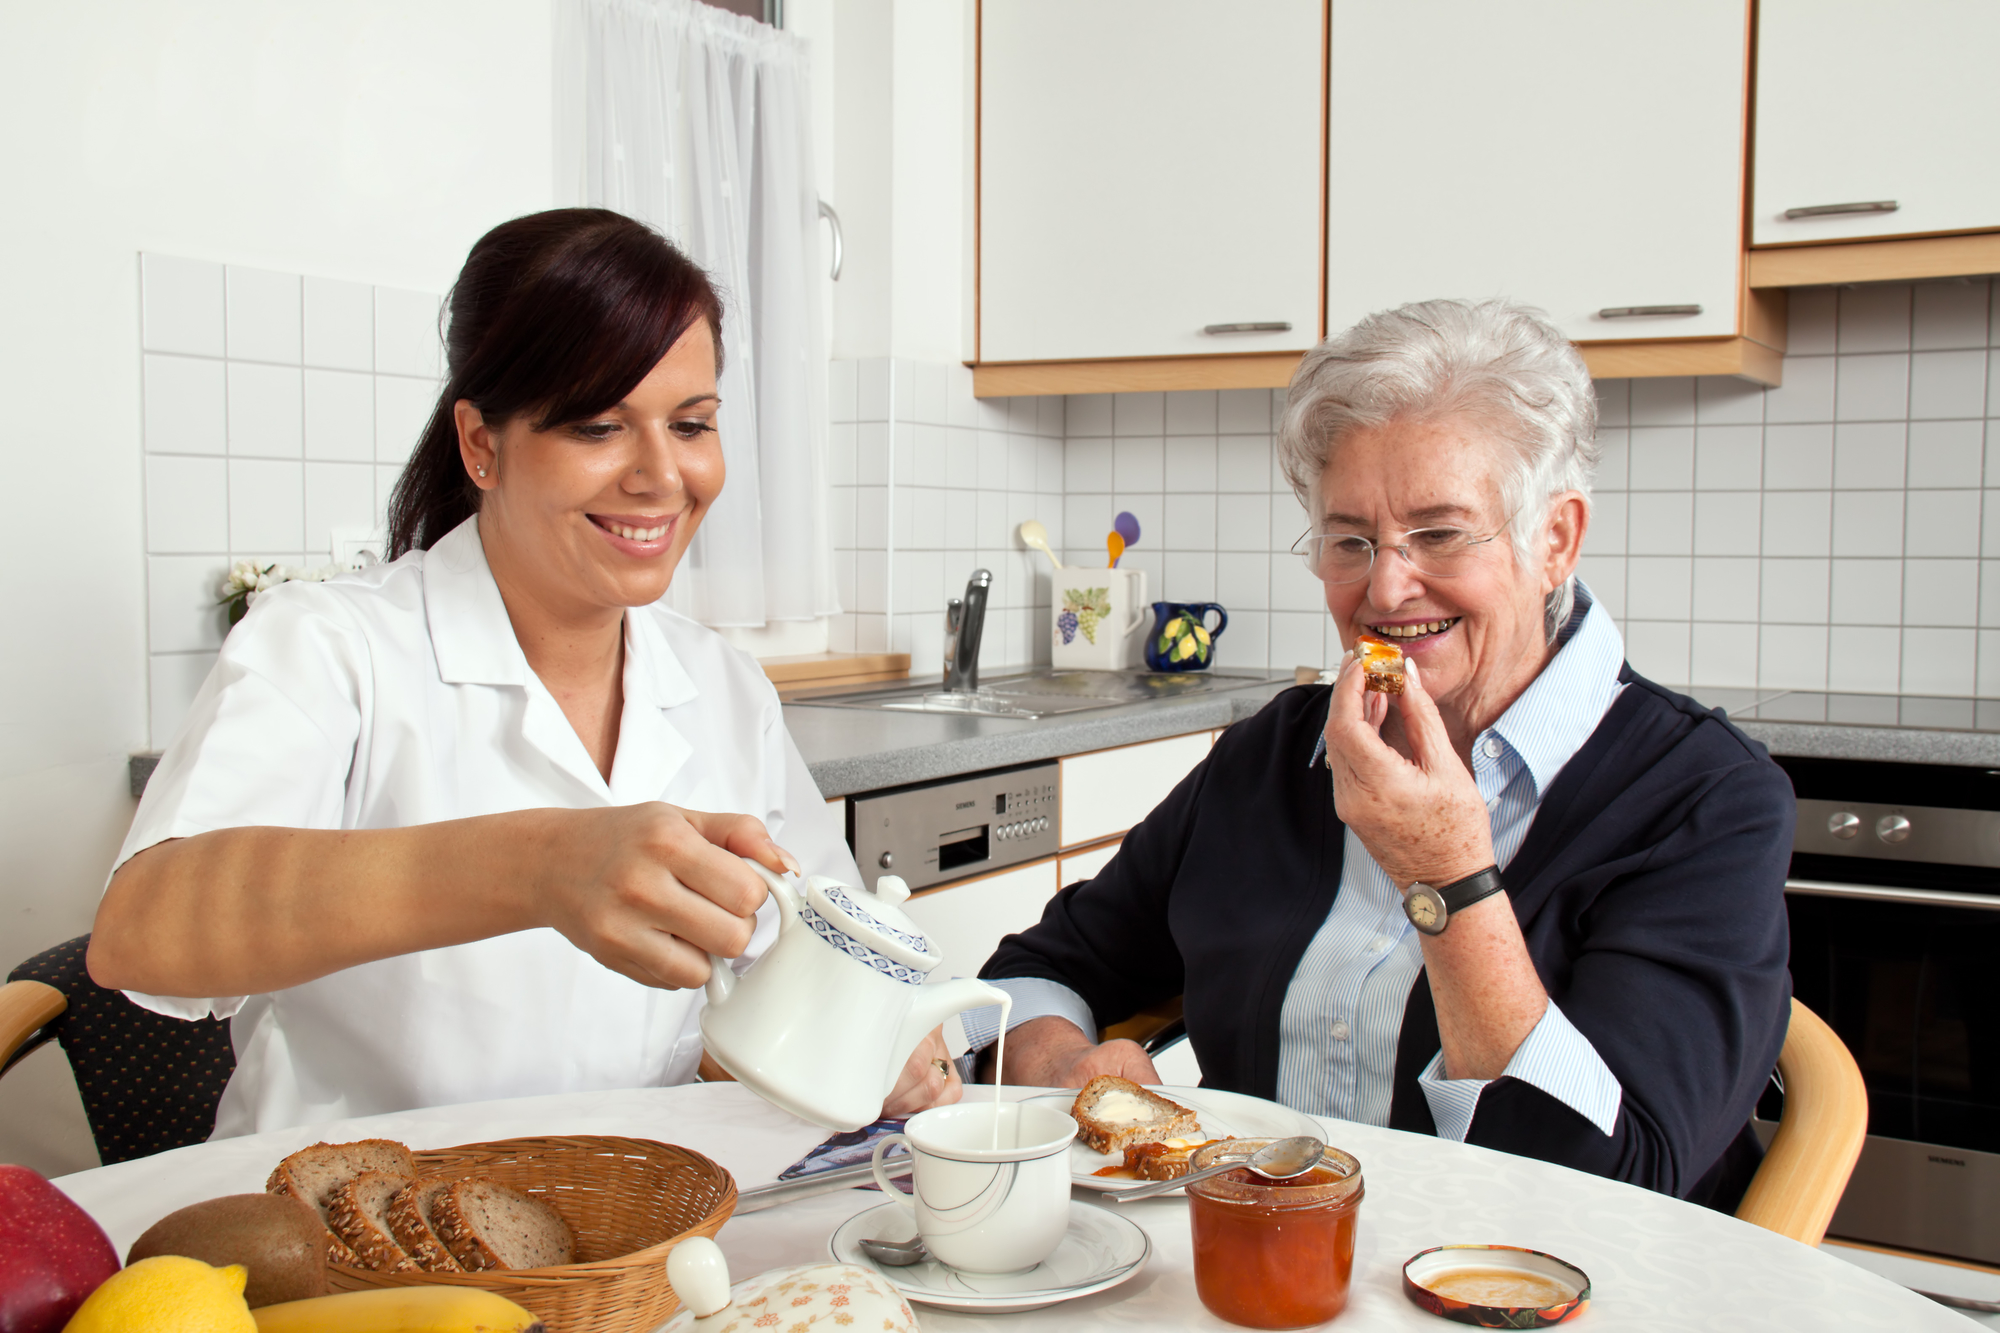 Home Health Care in Florida, Clearwater, Pasco County